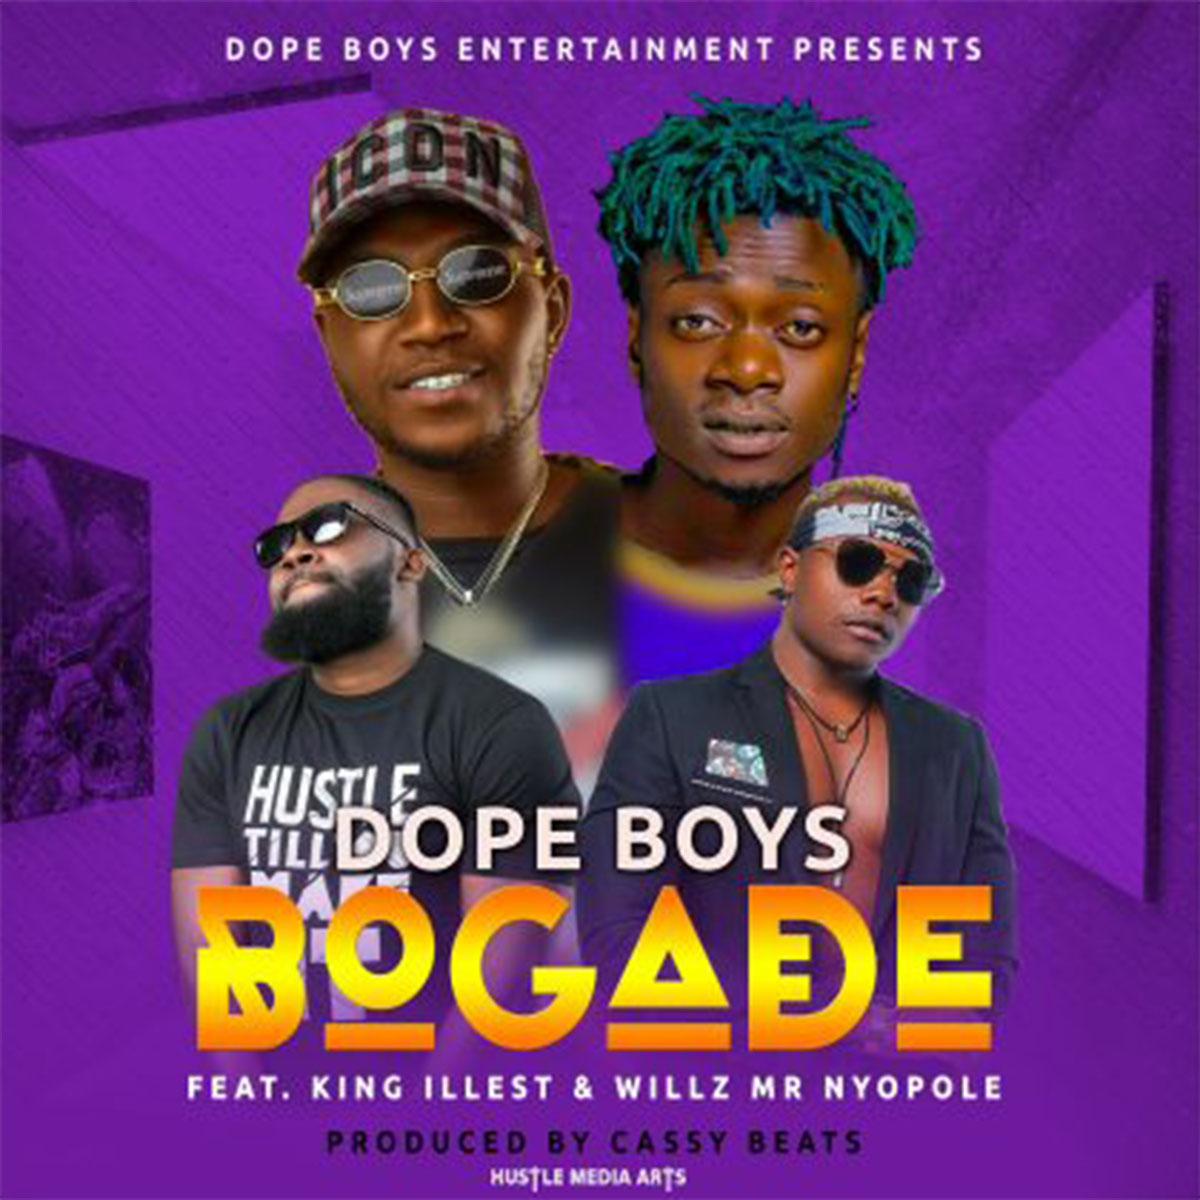 bogade (Ft Willz Mr Nyopole, King Illest)